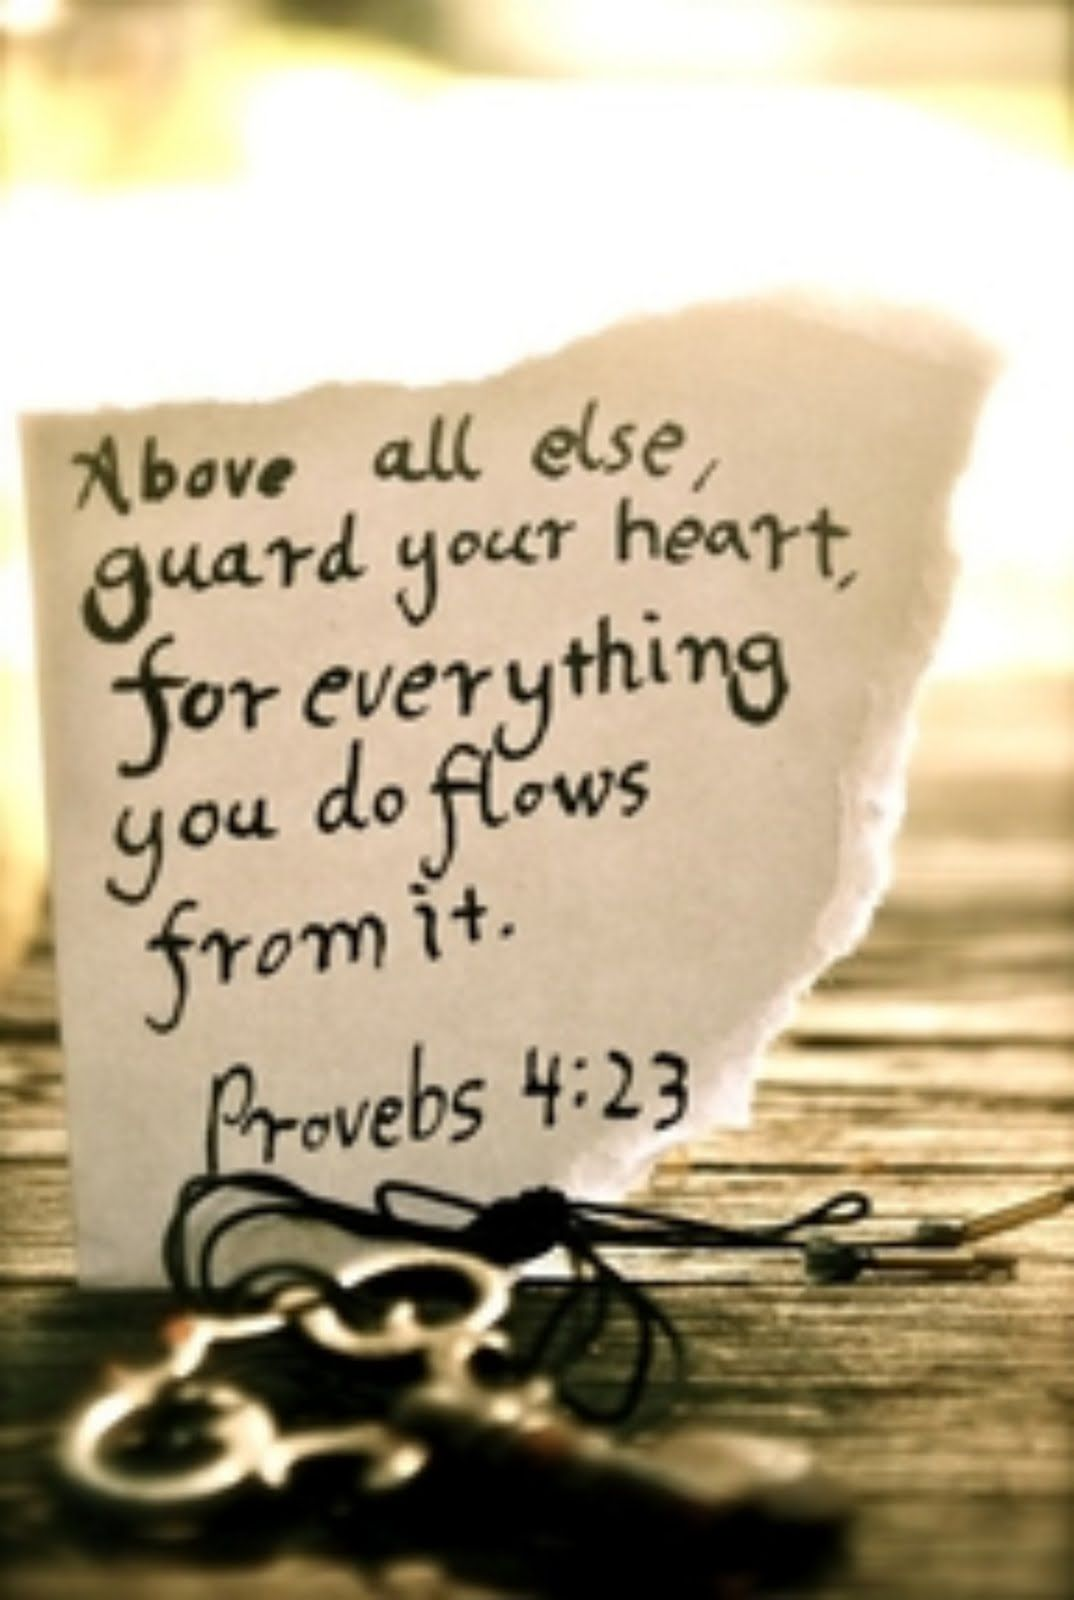 Short Quotes About Being Happy Proverbs Quote Trust In The Lord With All Your Heart And Lean